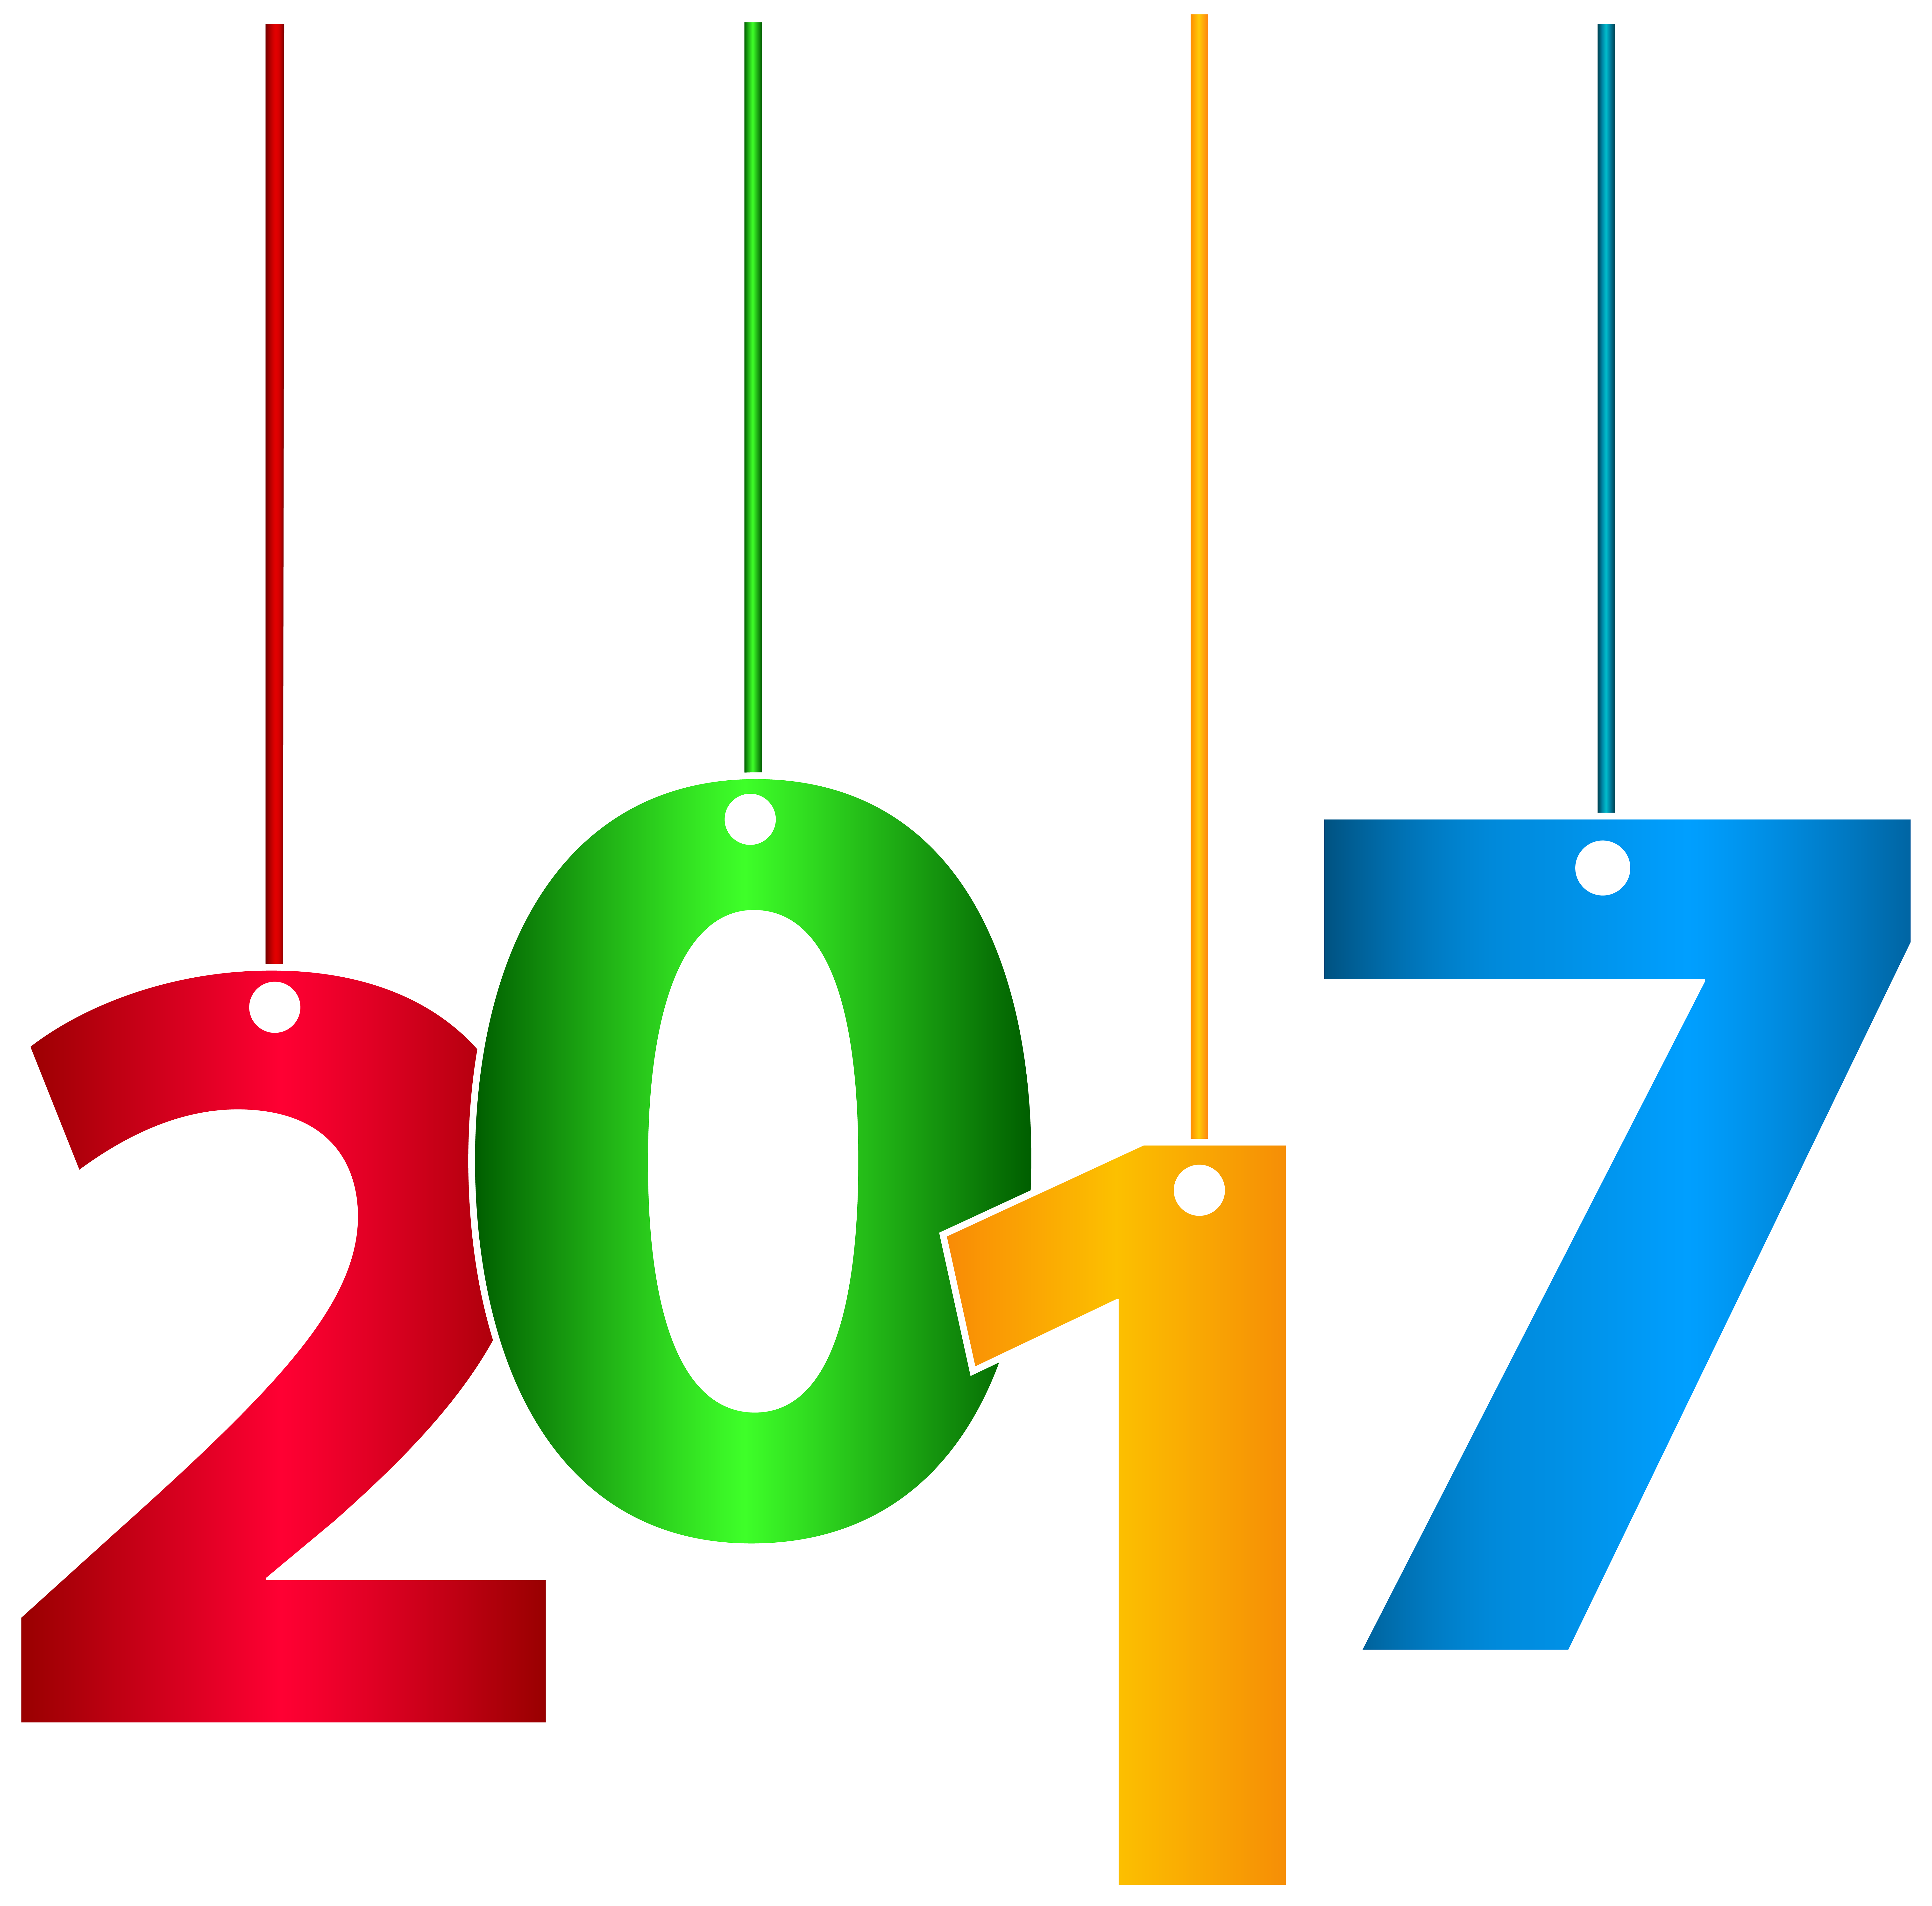 2017 clipart clear background. Hanging transparent clip